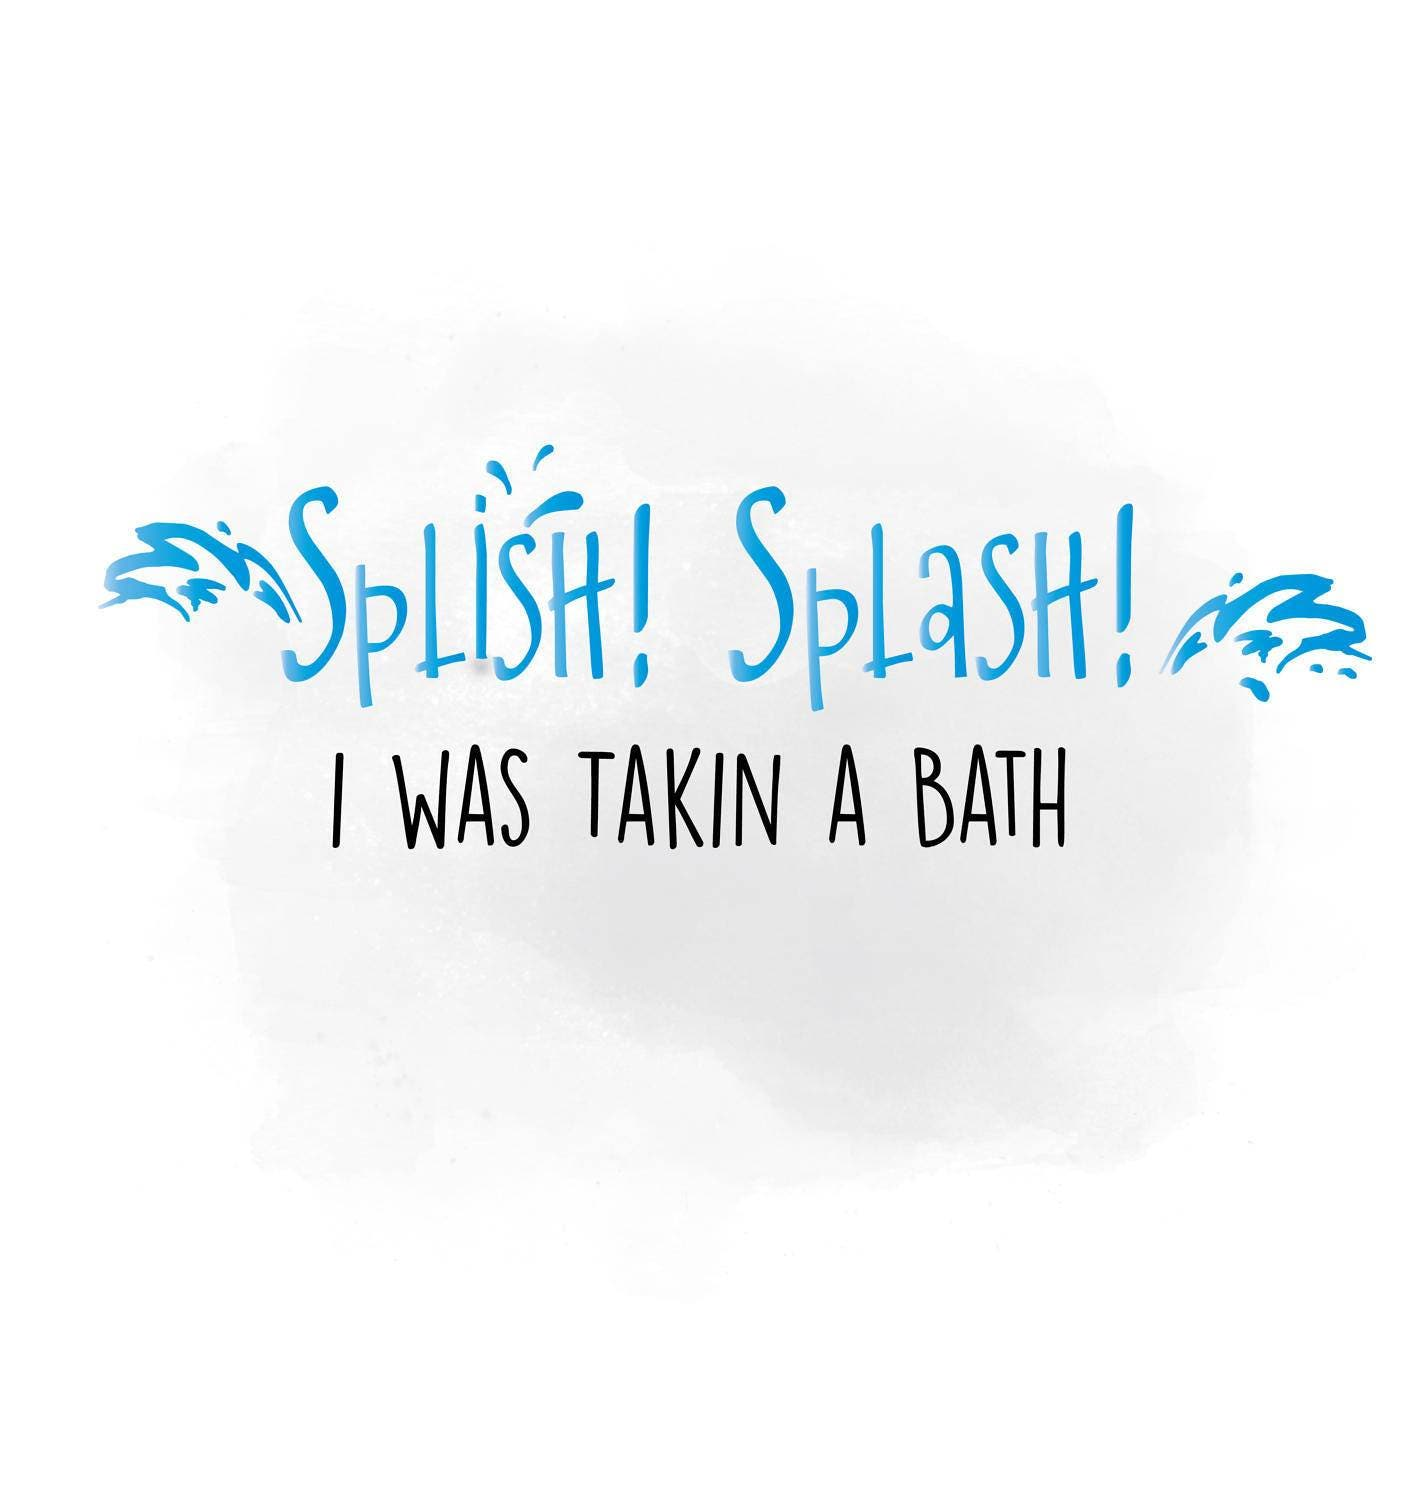 Splish splash bath svg clipart bathroom quote word art for Bathroom quotes svg